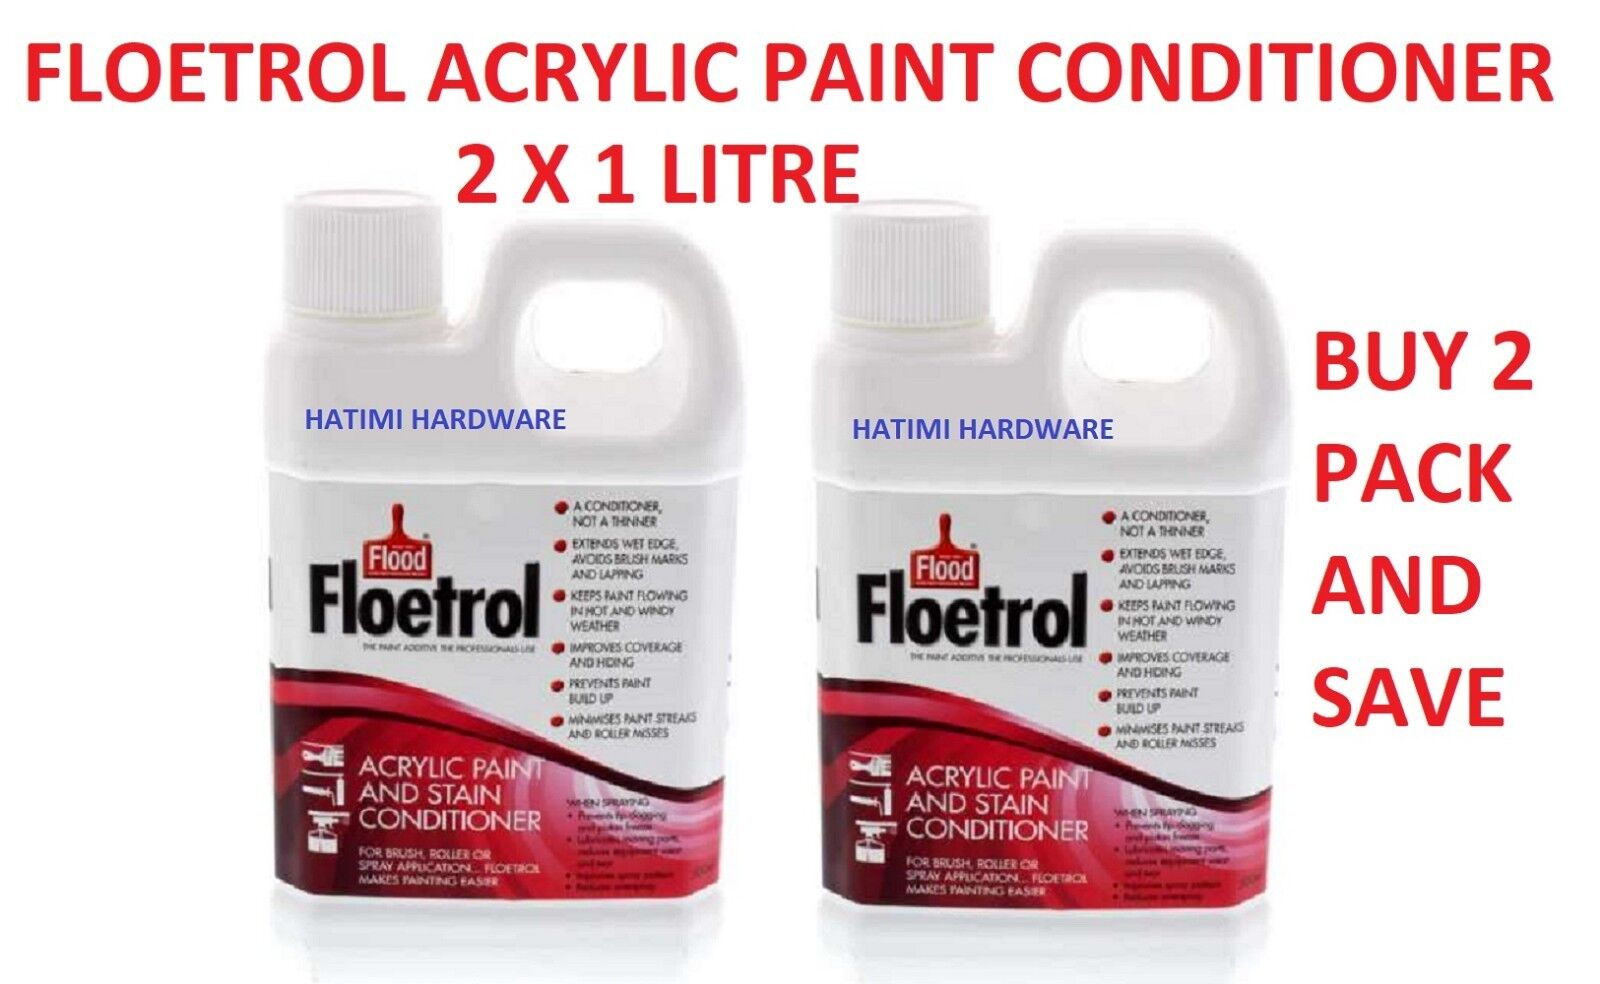 Floetrol Acrylic Paint Stain Conditioner 1 Litre X 2 Ebay